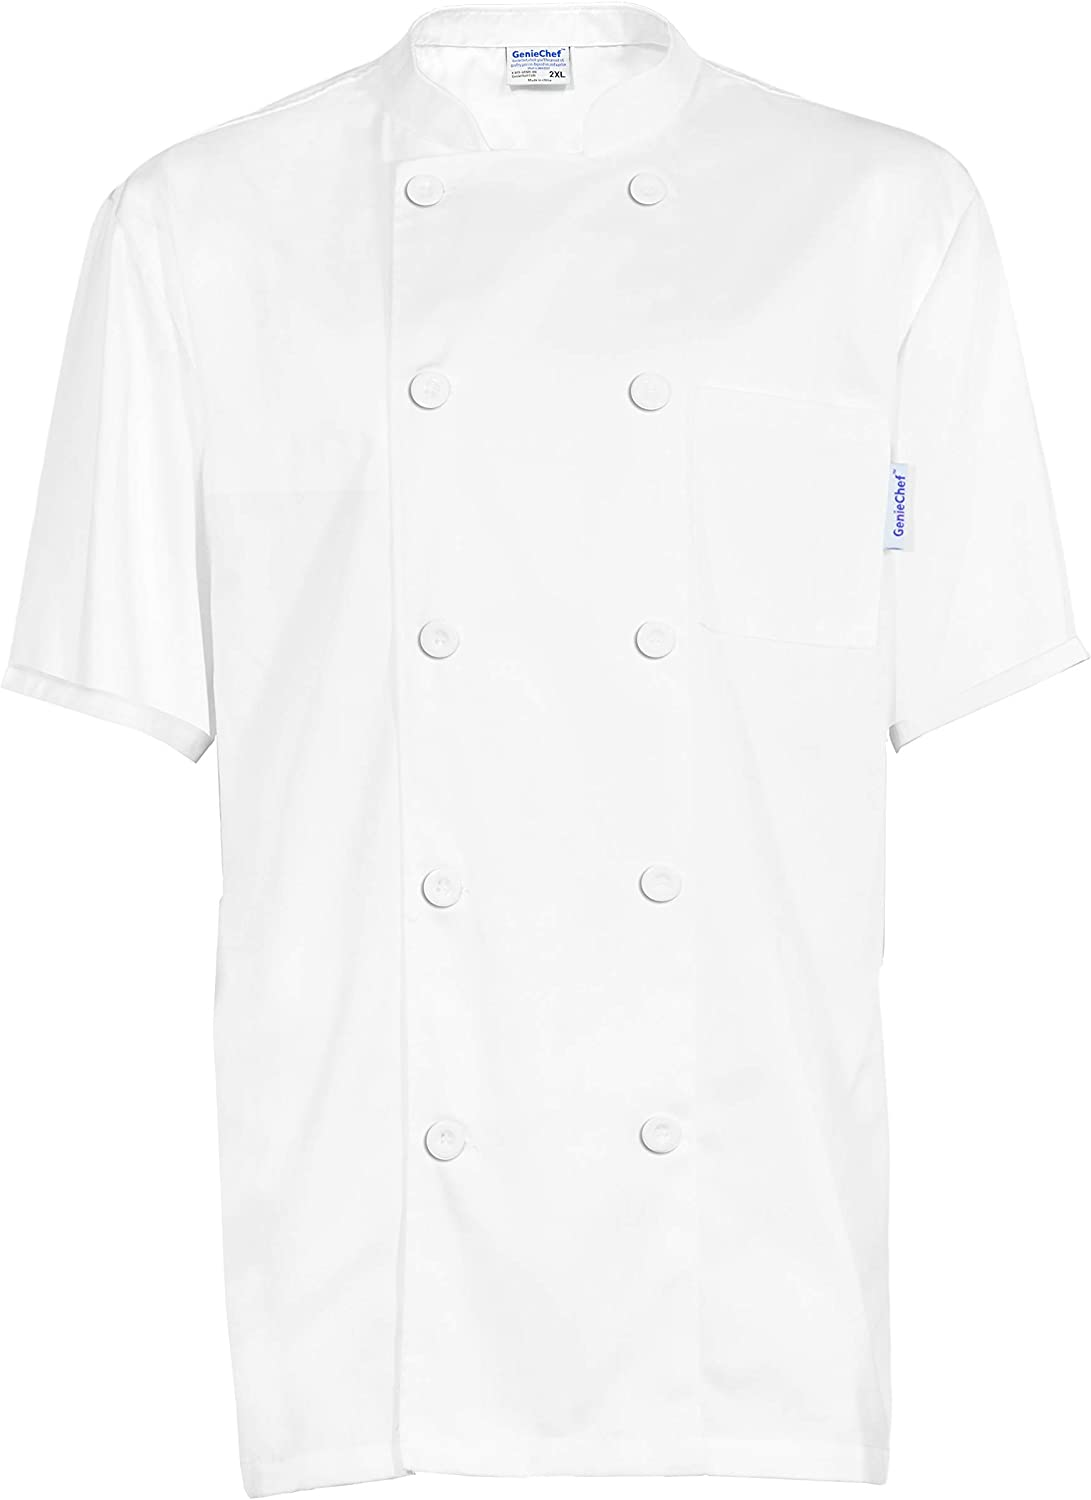 GenieChef Men's Short Sleeve Coat Classic Max 51% OFF Chef Sales of SALE items from new works